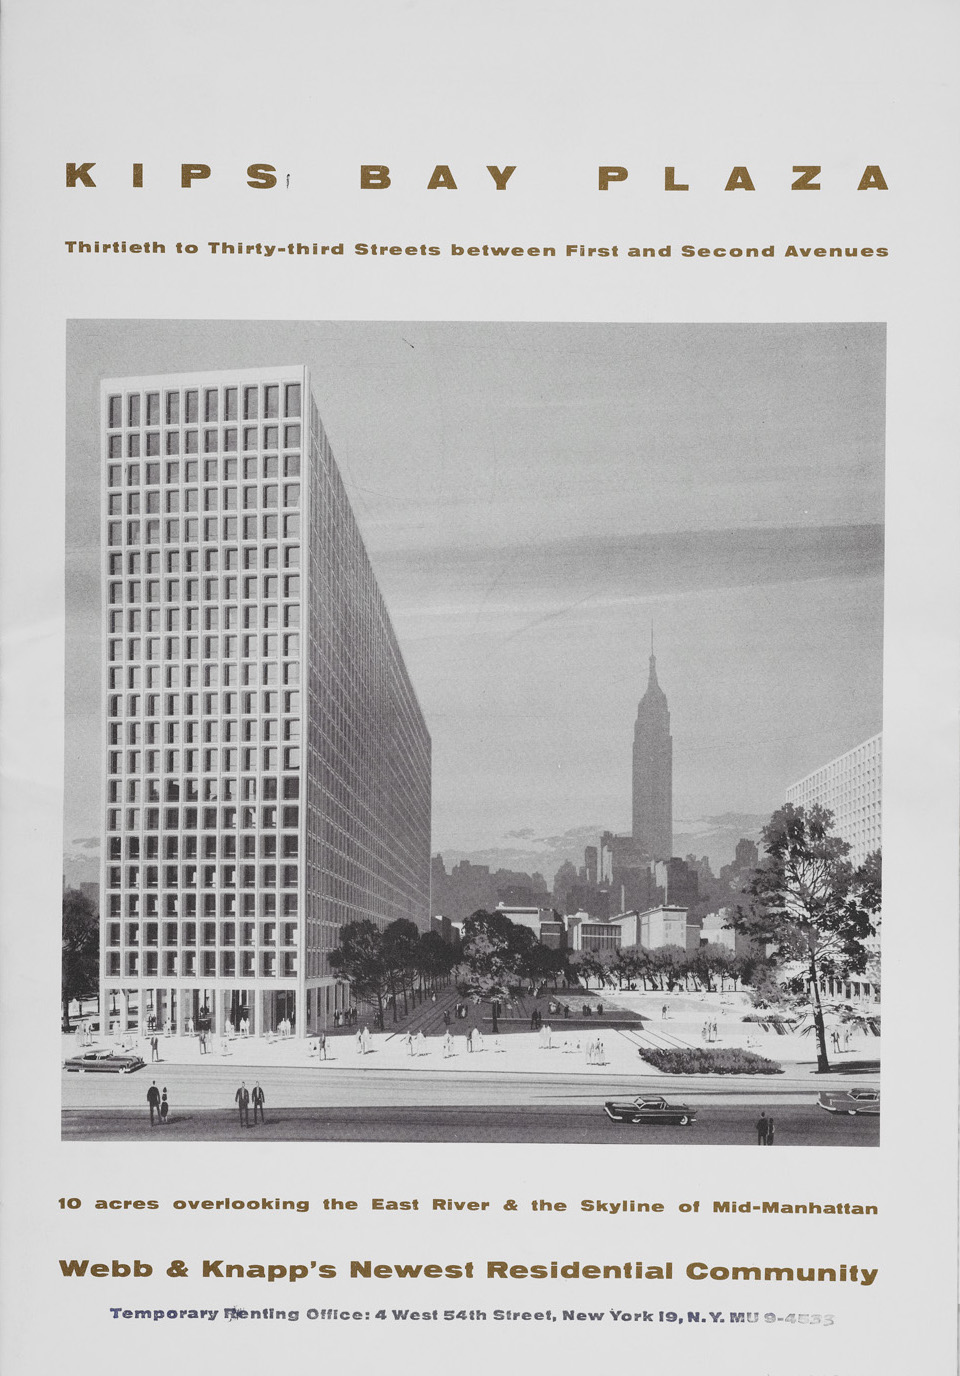 New York Real Estate Brochures Collection - Columbia University